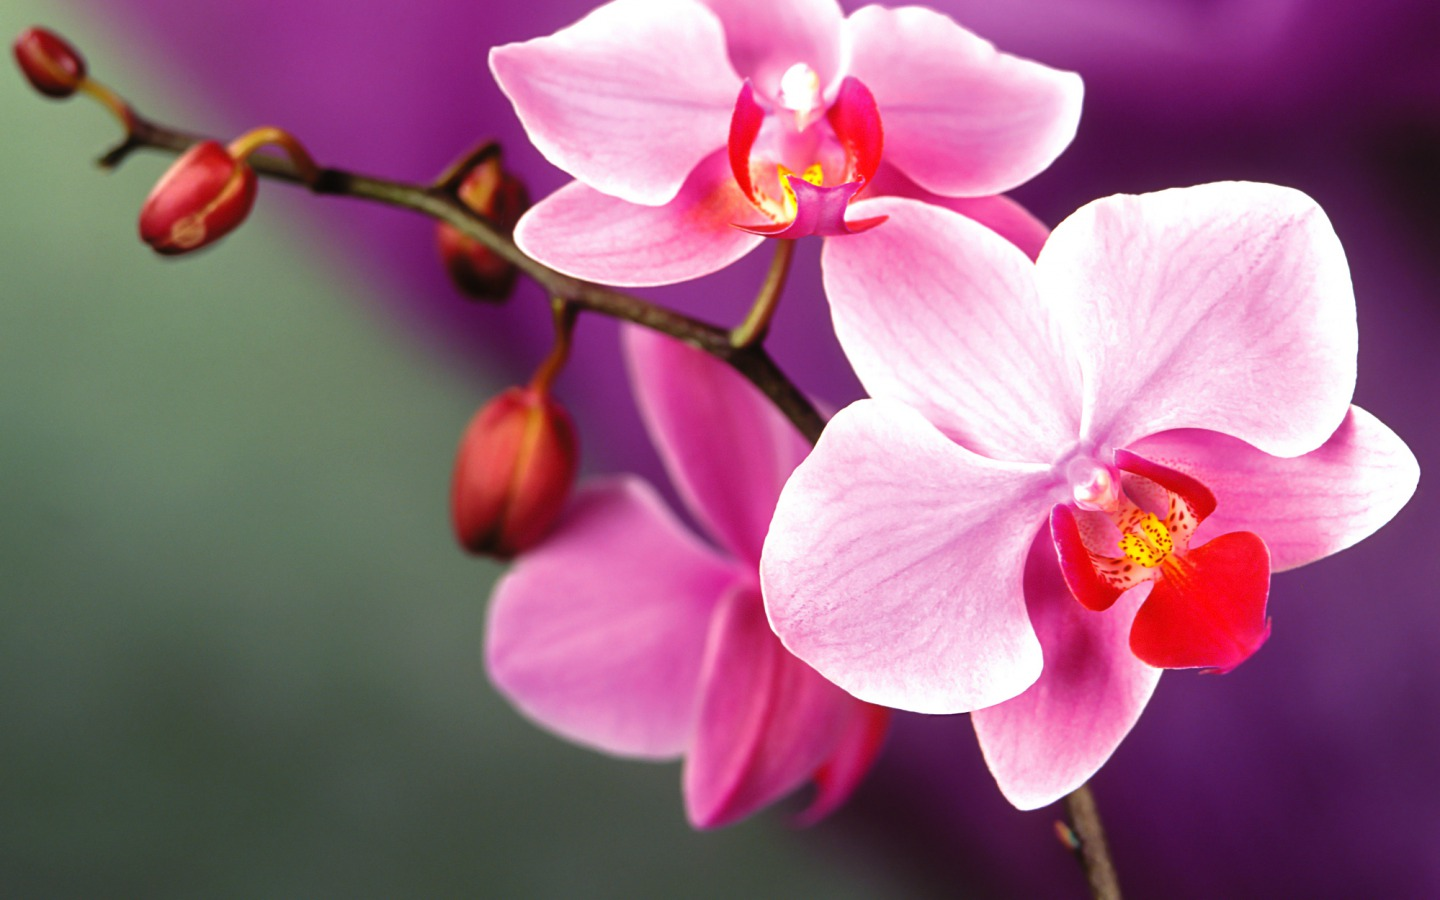 http://images6.fanpop.com/image/photos/35200000/Orchid-flowers-35255212-1440-900.jpg